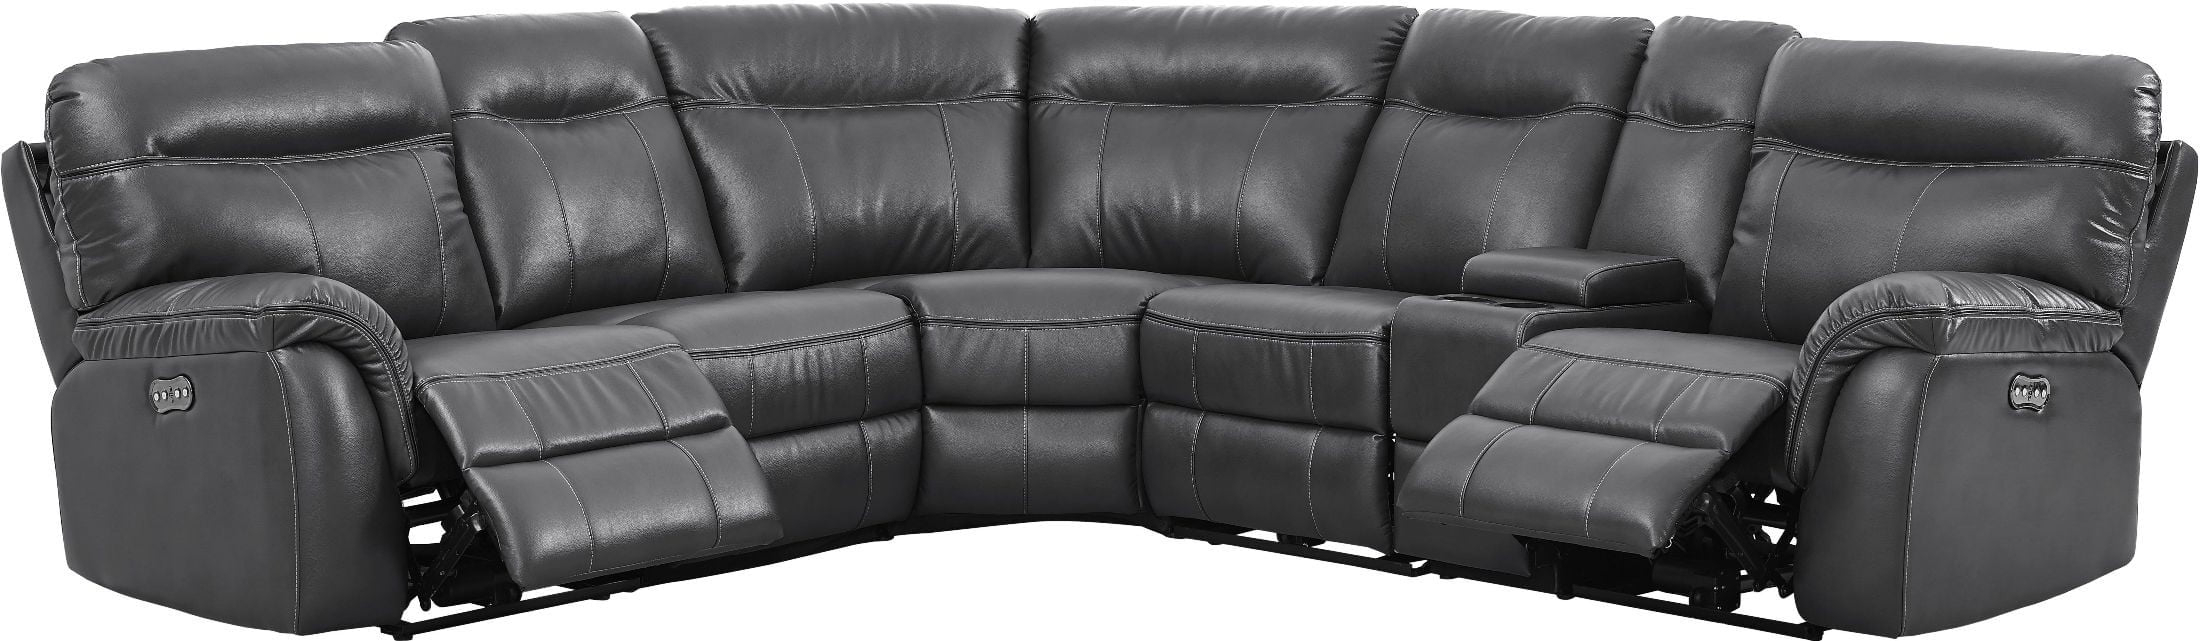 Coleman Furniture With Regard To Most Up To Date Turdur 2 Piece Sectionals With Raf Loveseat (View 8 of 20)